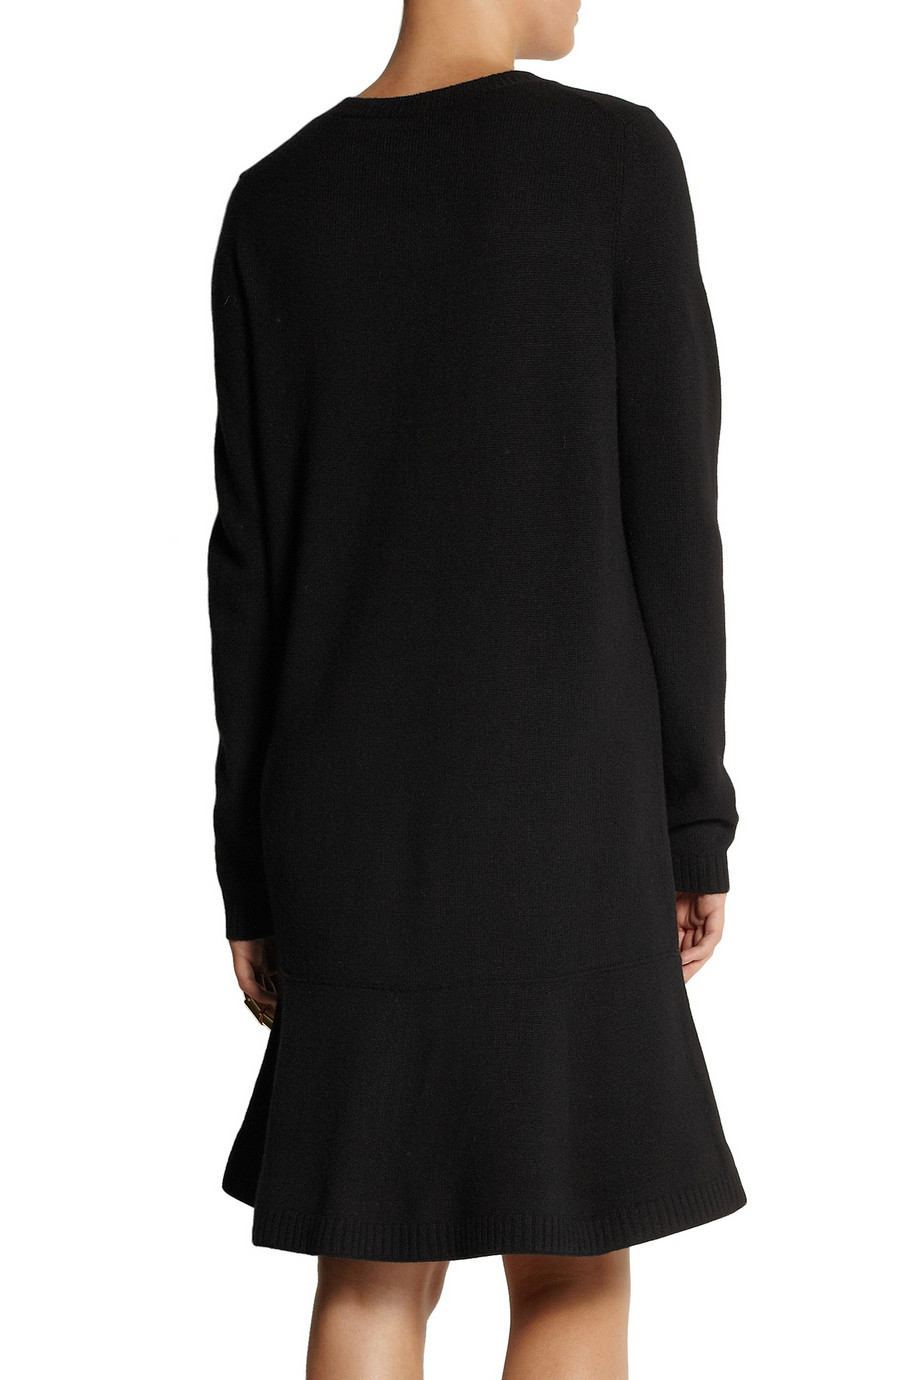 Miu Miu Wool Sweater Dress In Black Lyst